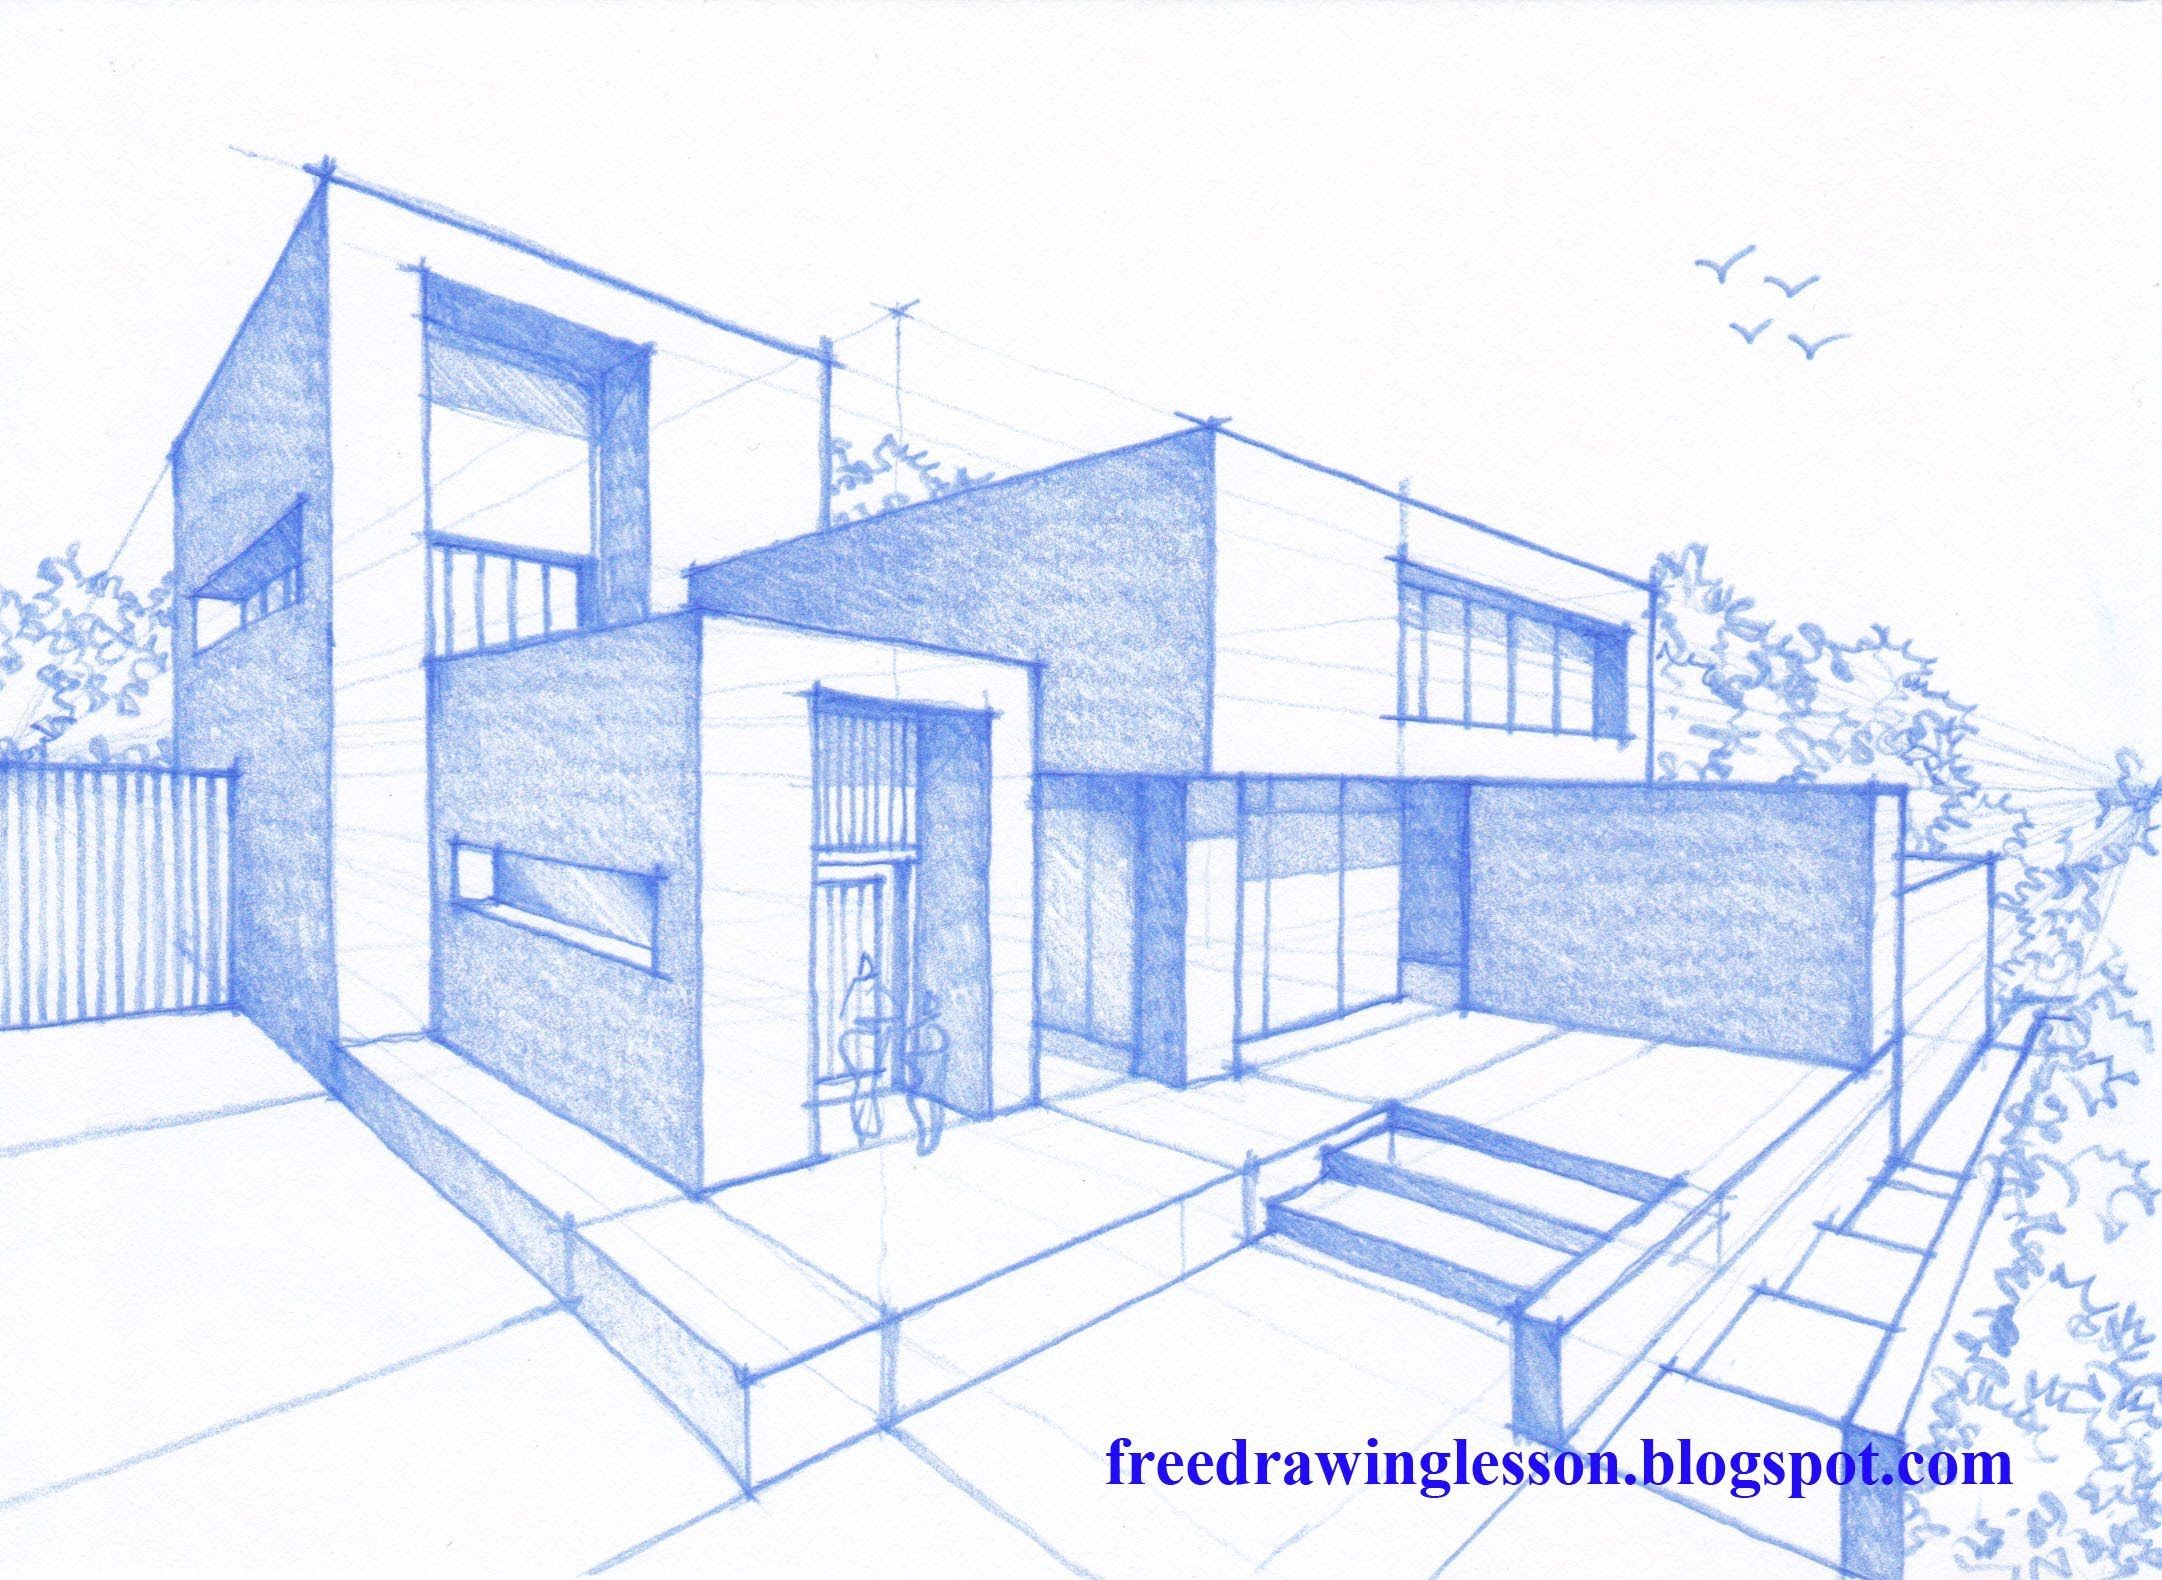 Let us try to draw this house design by following the step for Draw your house